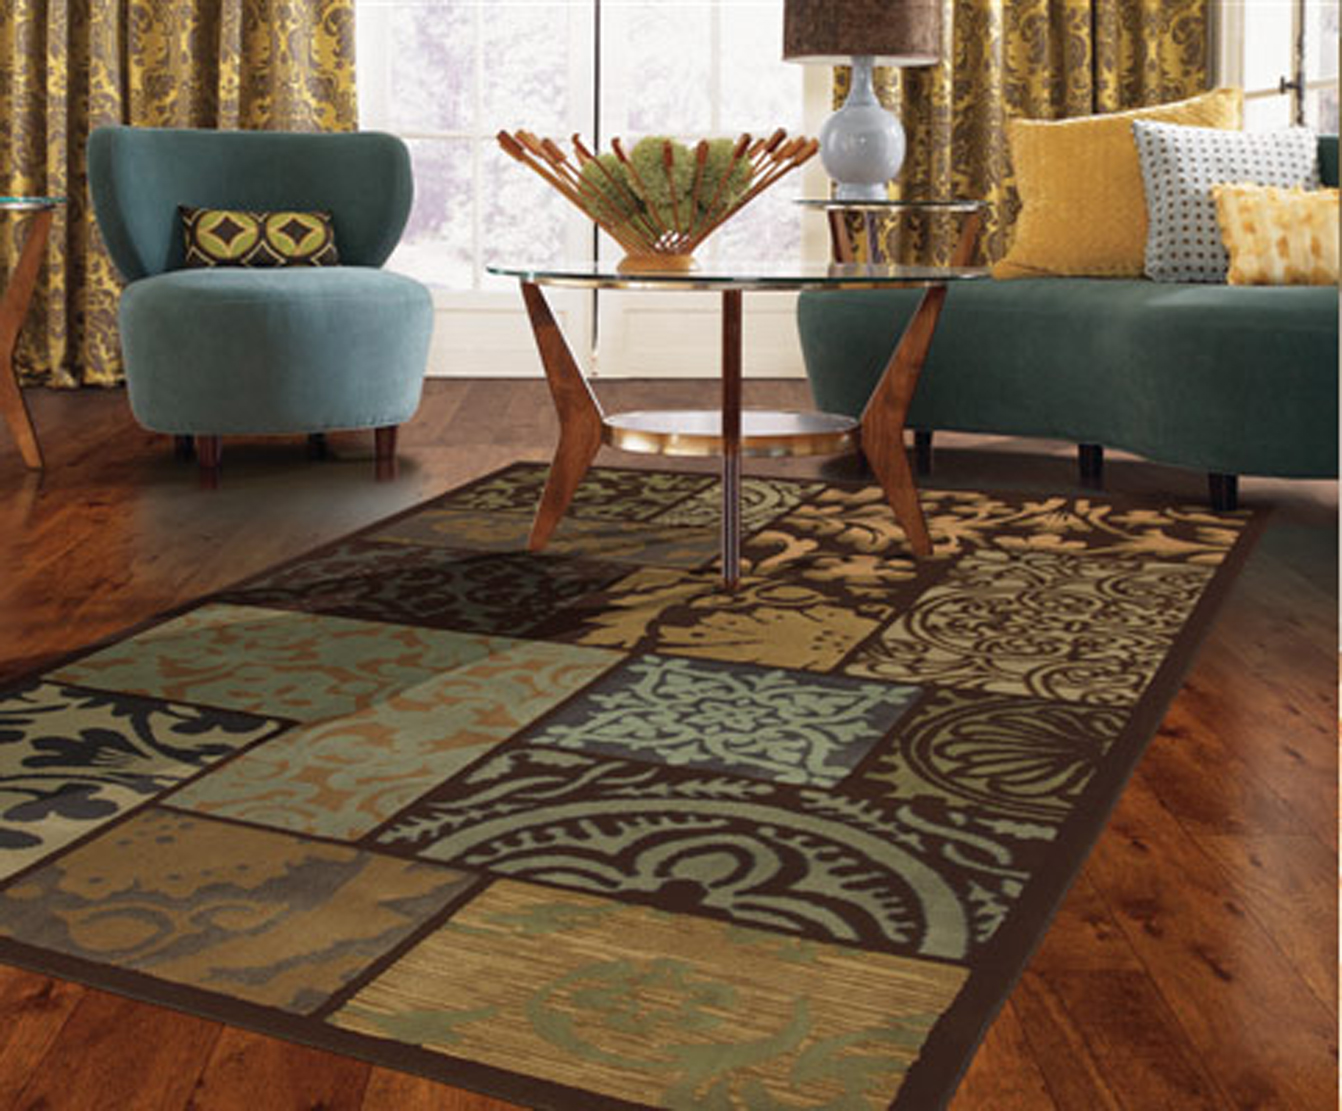 Area carpet and rugs oriental rugs camp hill pa for Best area rug websites